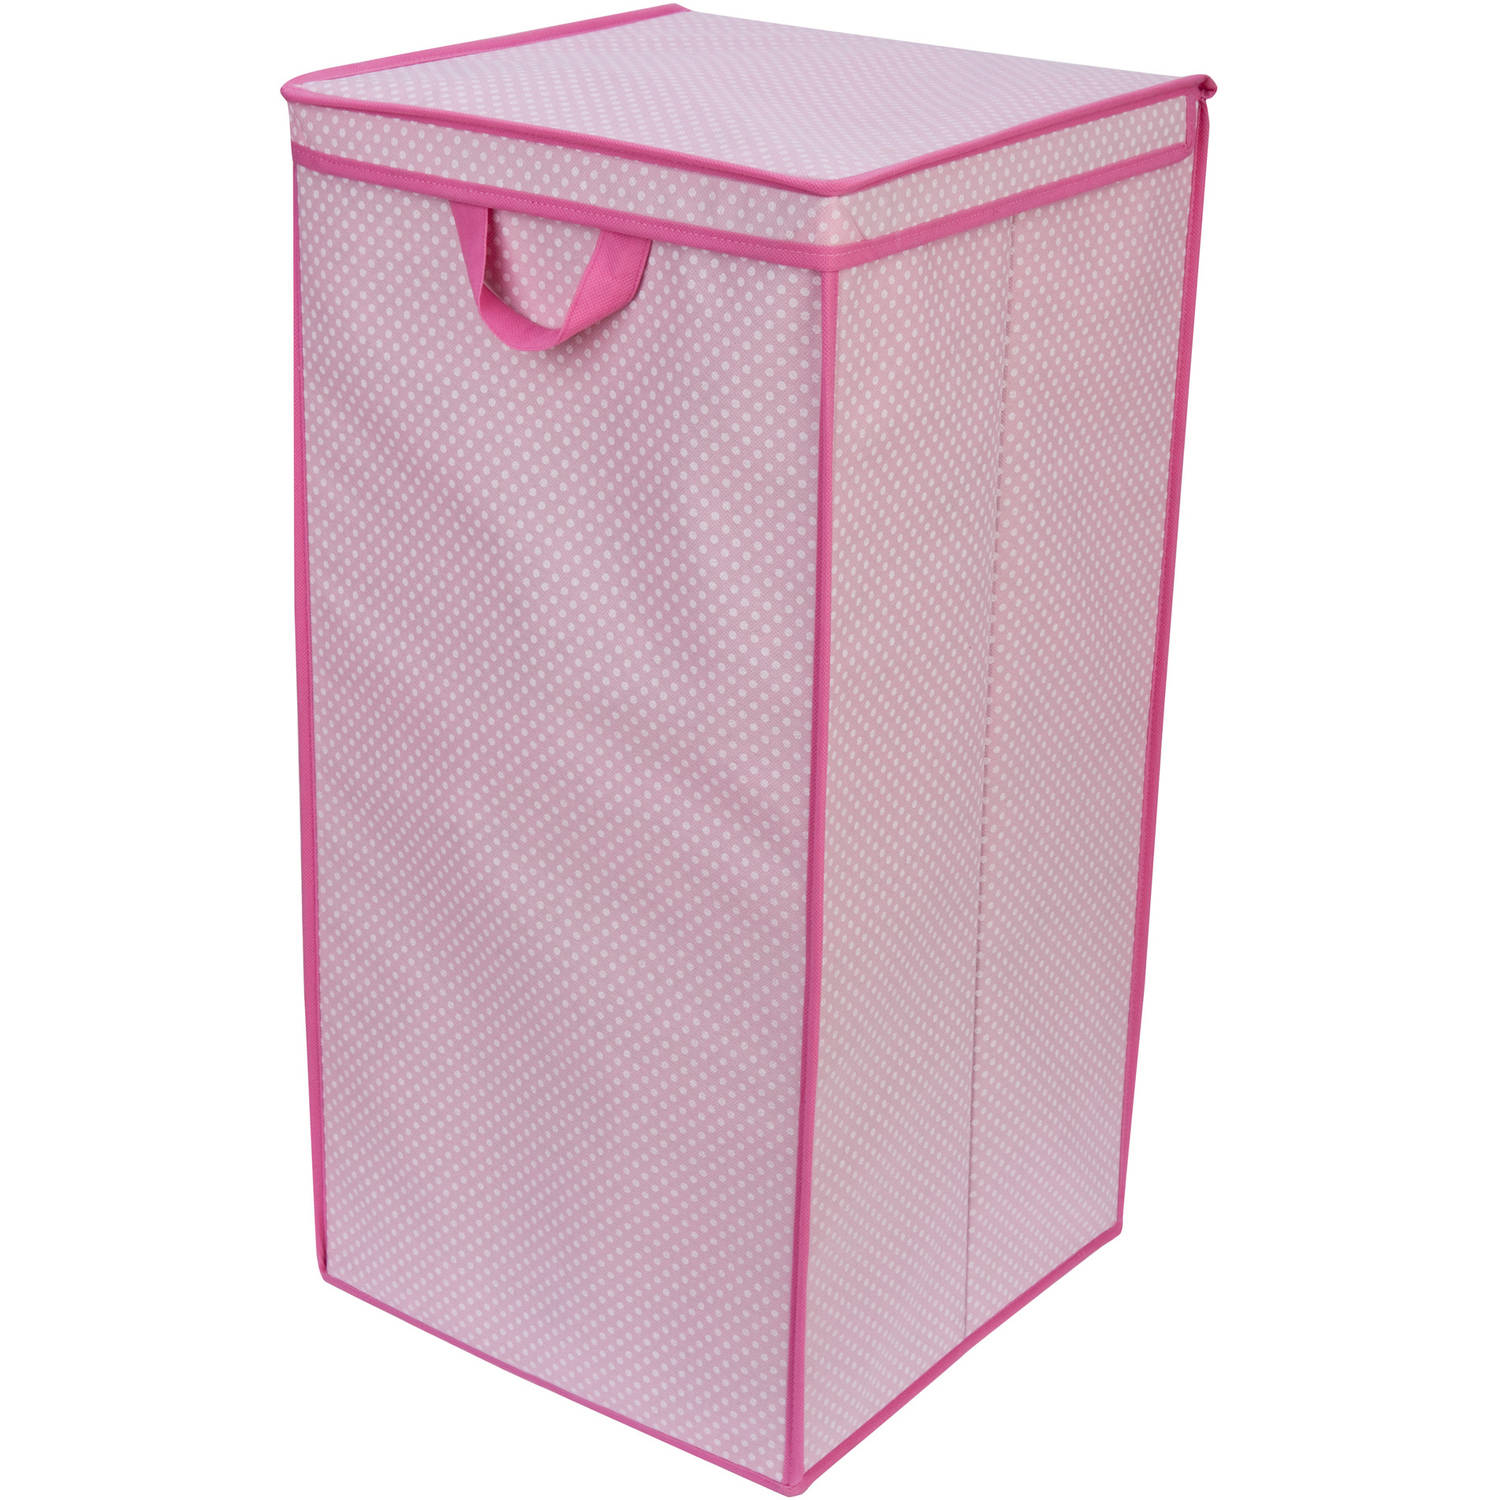 Delta Children Tall Nursery Clothing Hamper - Barely Pink Polka Dot